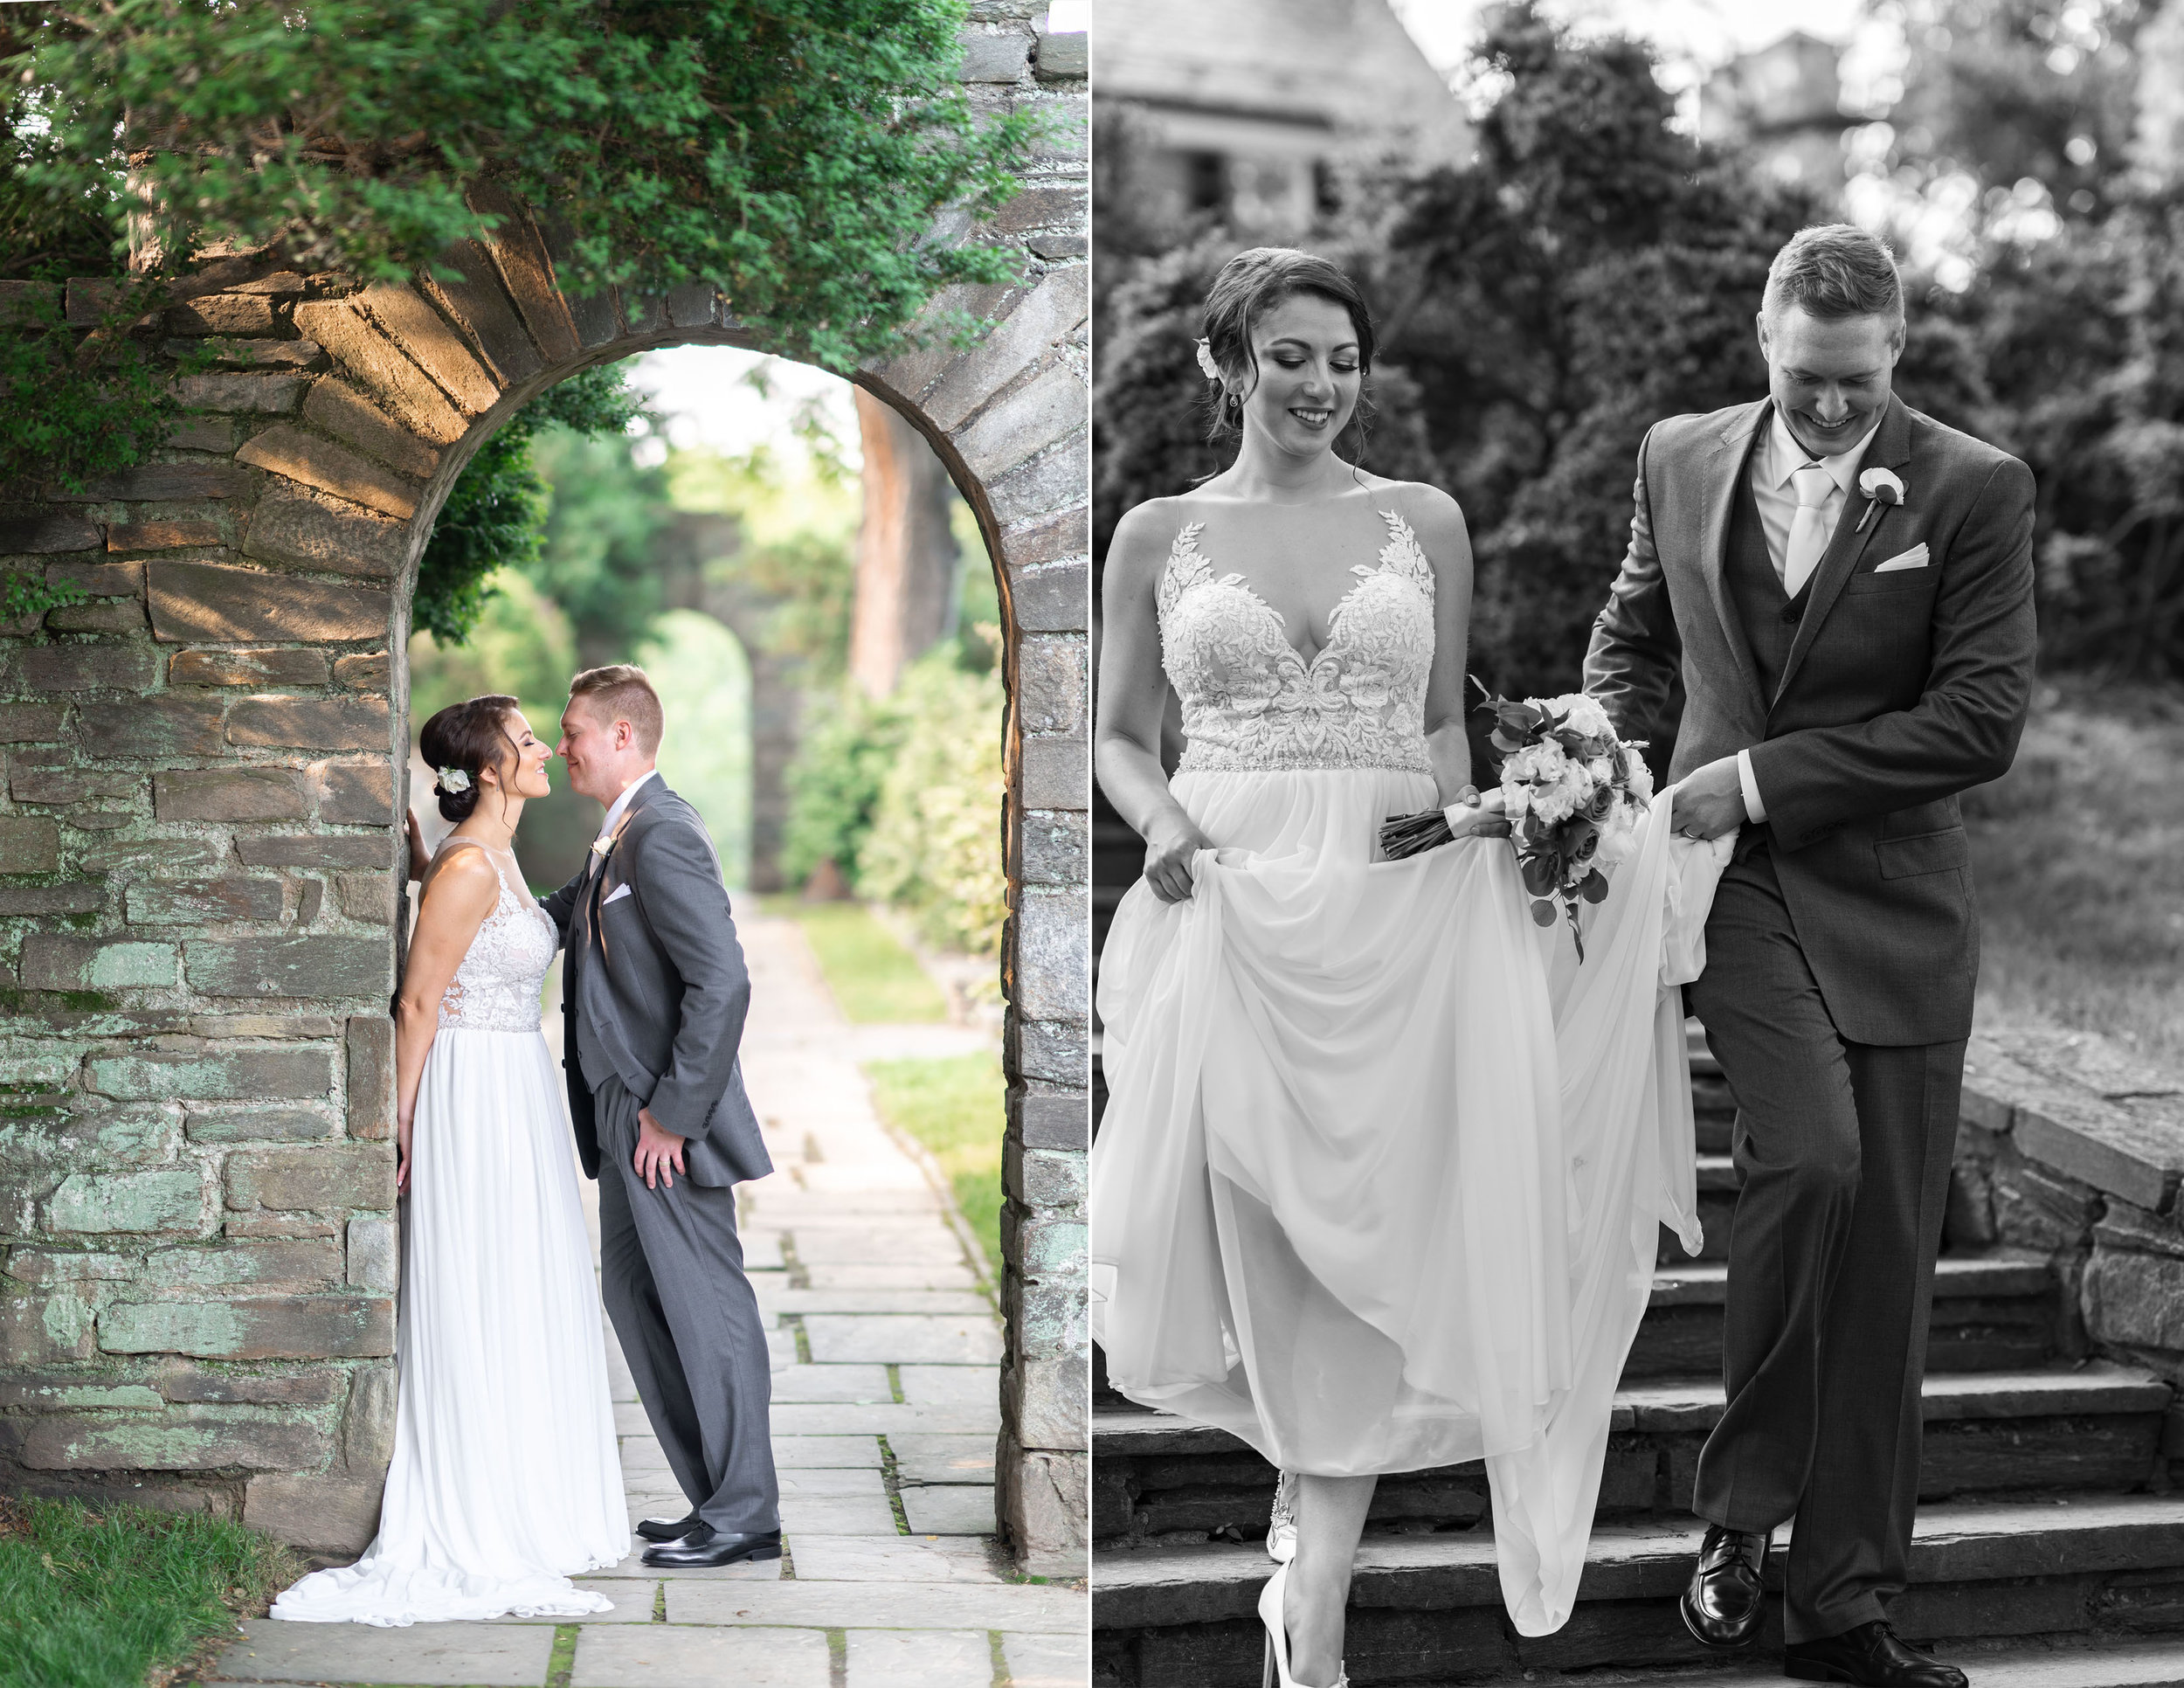 Bride and groom classic wedding photo portraits at Glenview Mansion steps